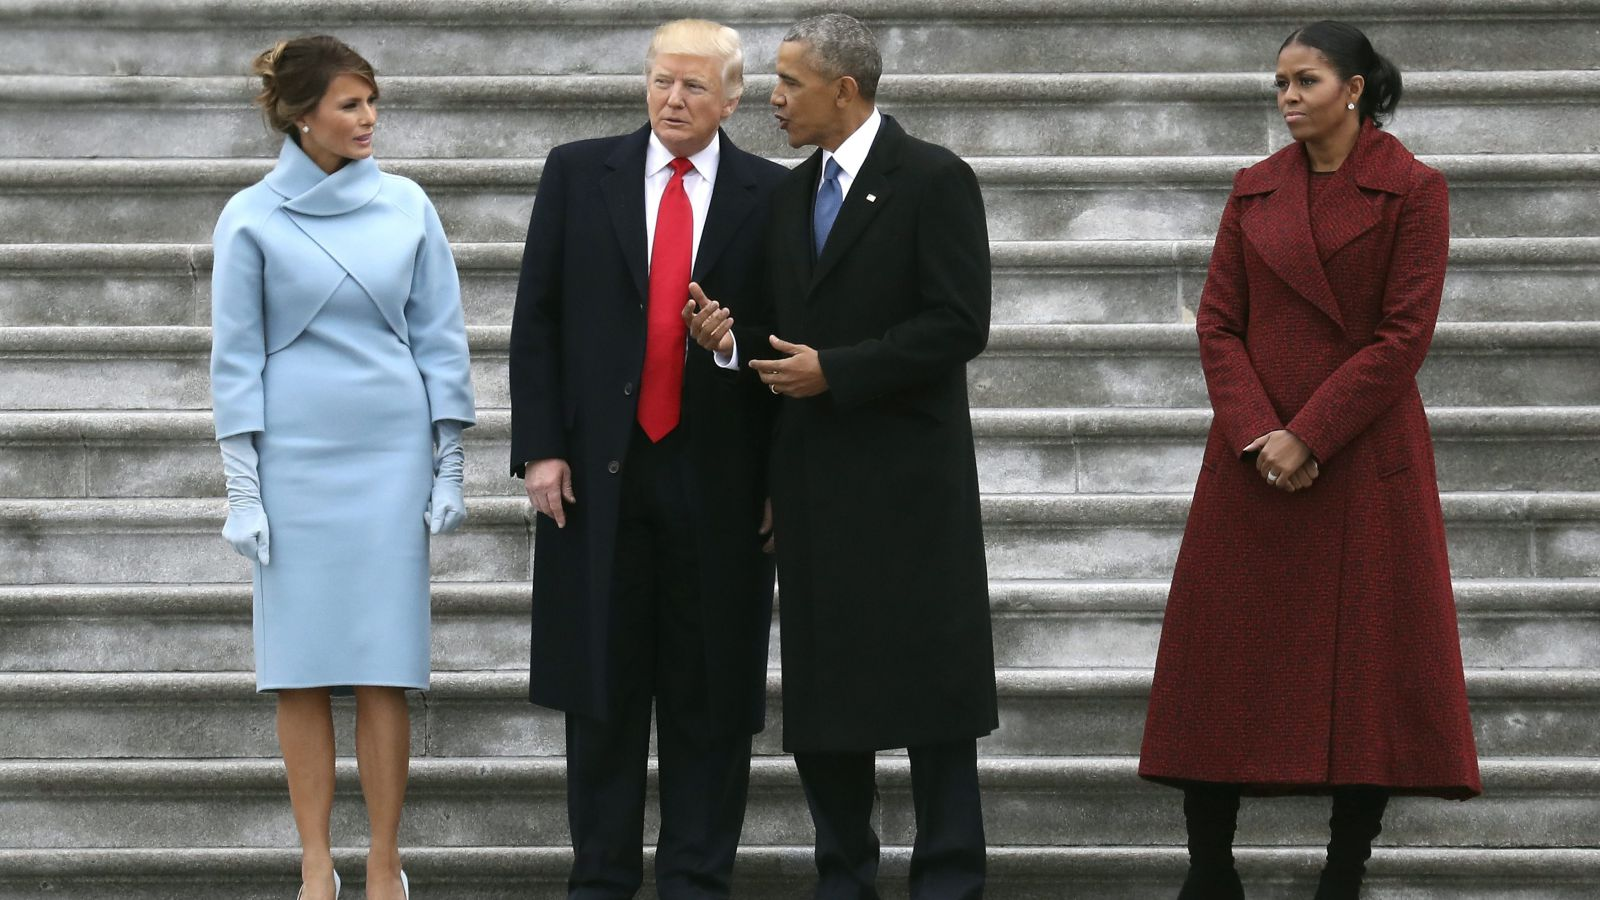 Melania and Donald Trump with Barack and Michelle Obama at Trump's inauguration last January (Credit: Pool photo)